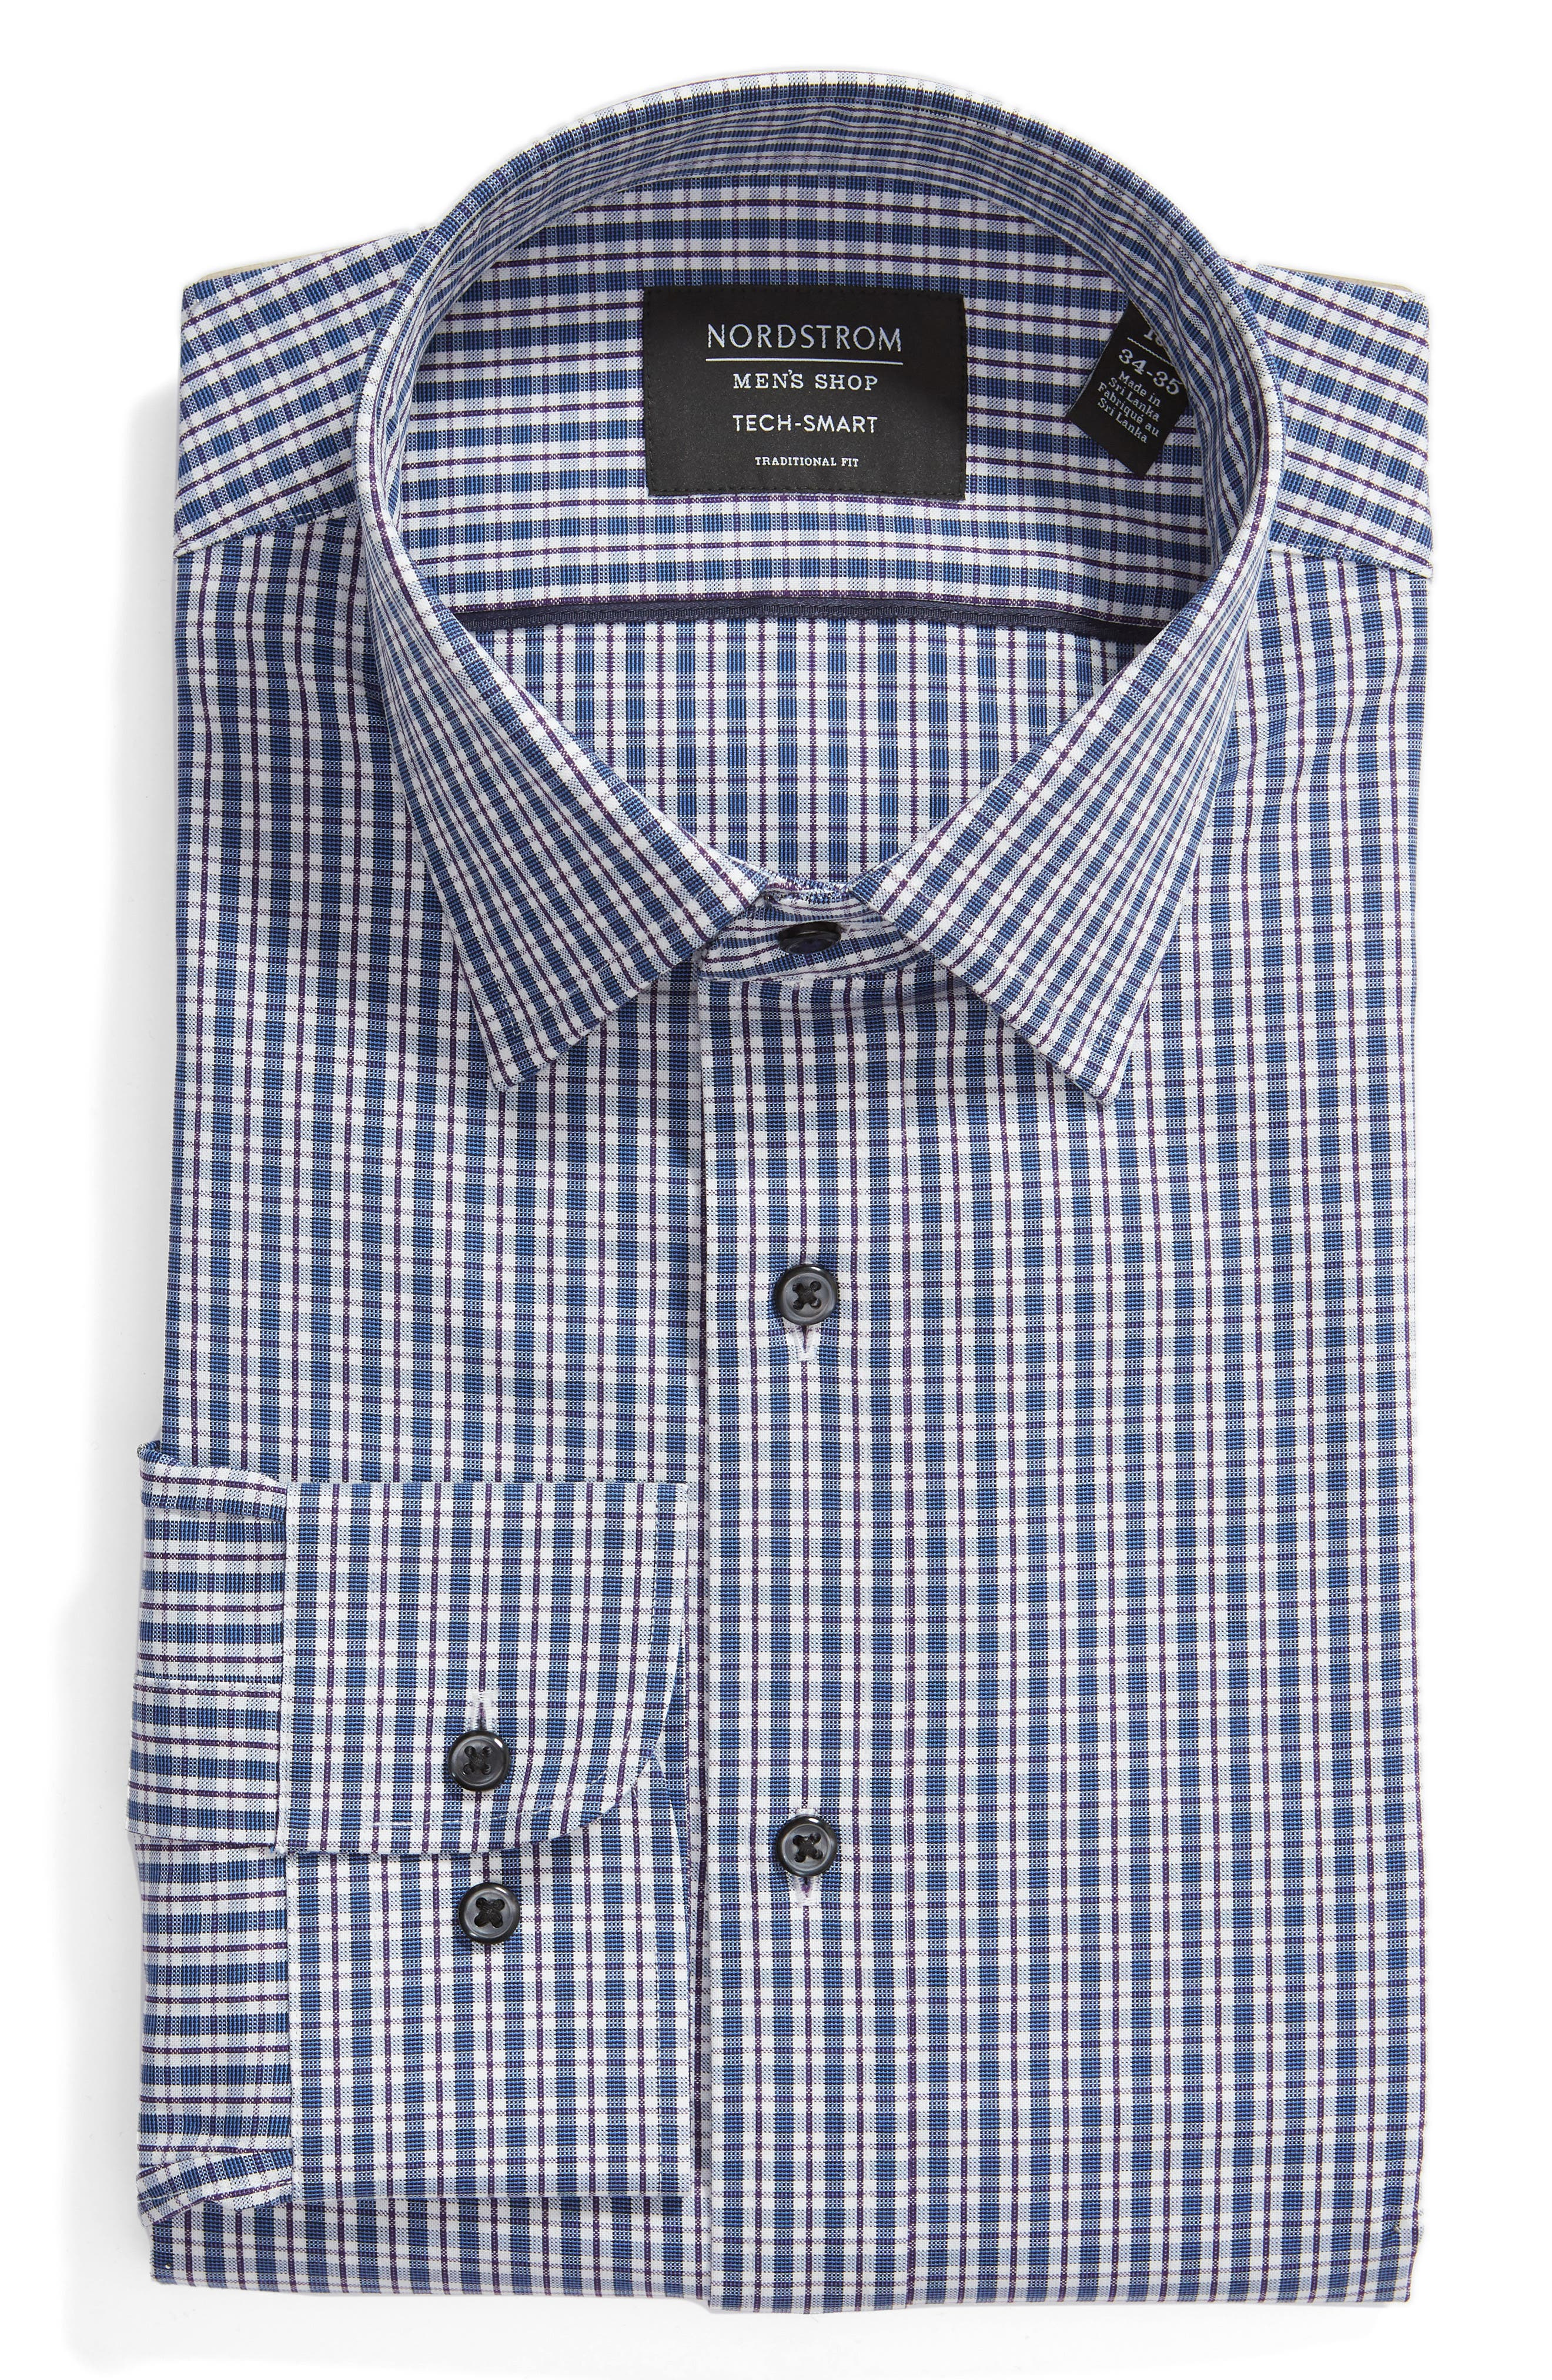 Tech-Smart Traditional Fit Plaid Stretch Dress Shirt,                             Alternate thumbnail 5, color,                             NAVY DUSK